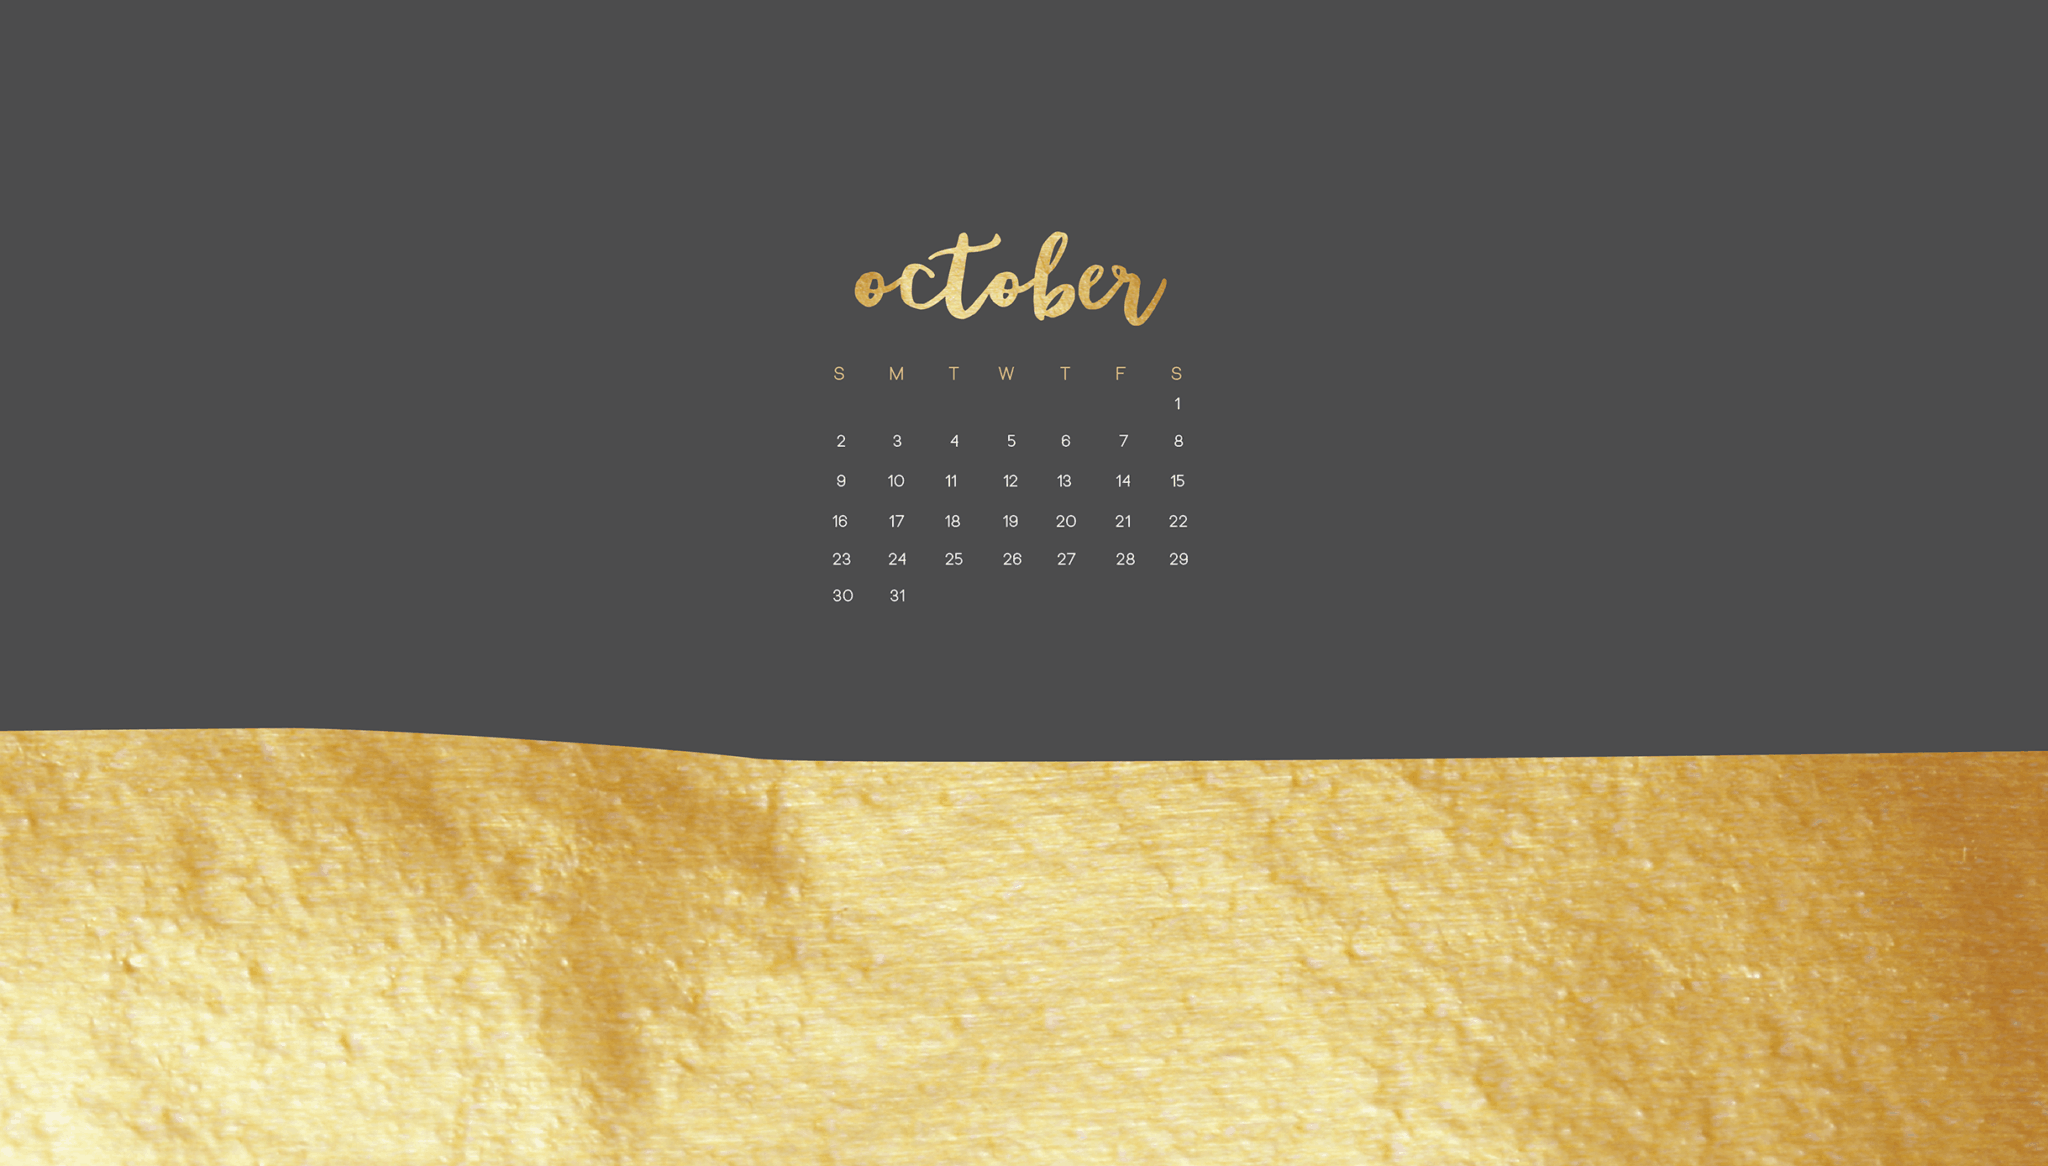 Free October Wallpaper Calendars For Smart Phone Or Desktop